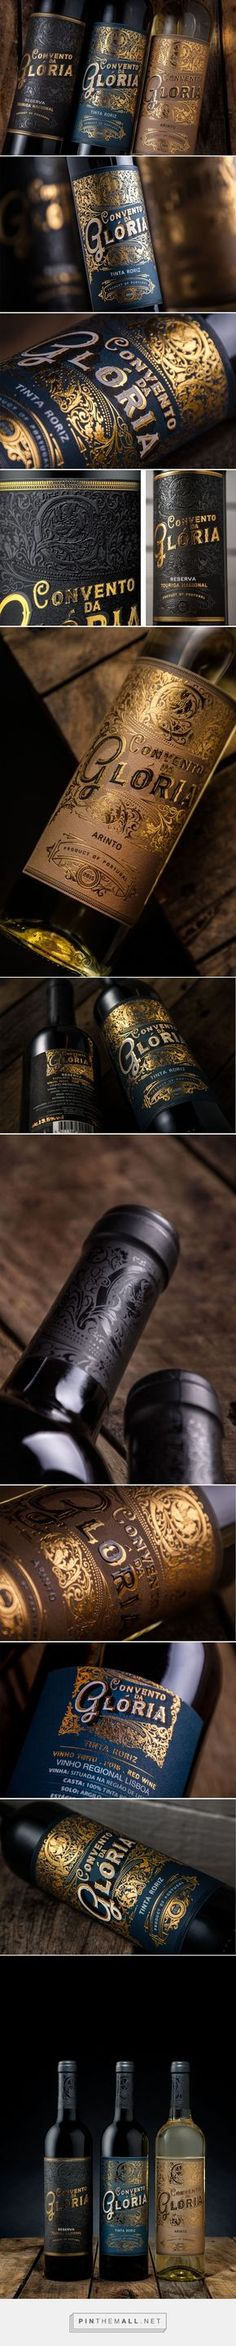 Convento da Glória wine label design by M&A Creative Agency (Portugal)… Beverage Packaging, Bottle Packaging, Brand Packaging, Candle Packaging, Design Packaging, Wine Label Design, Bottle Design, Impression Etiquette, Fashion Typography